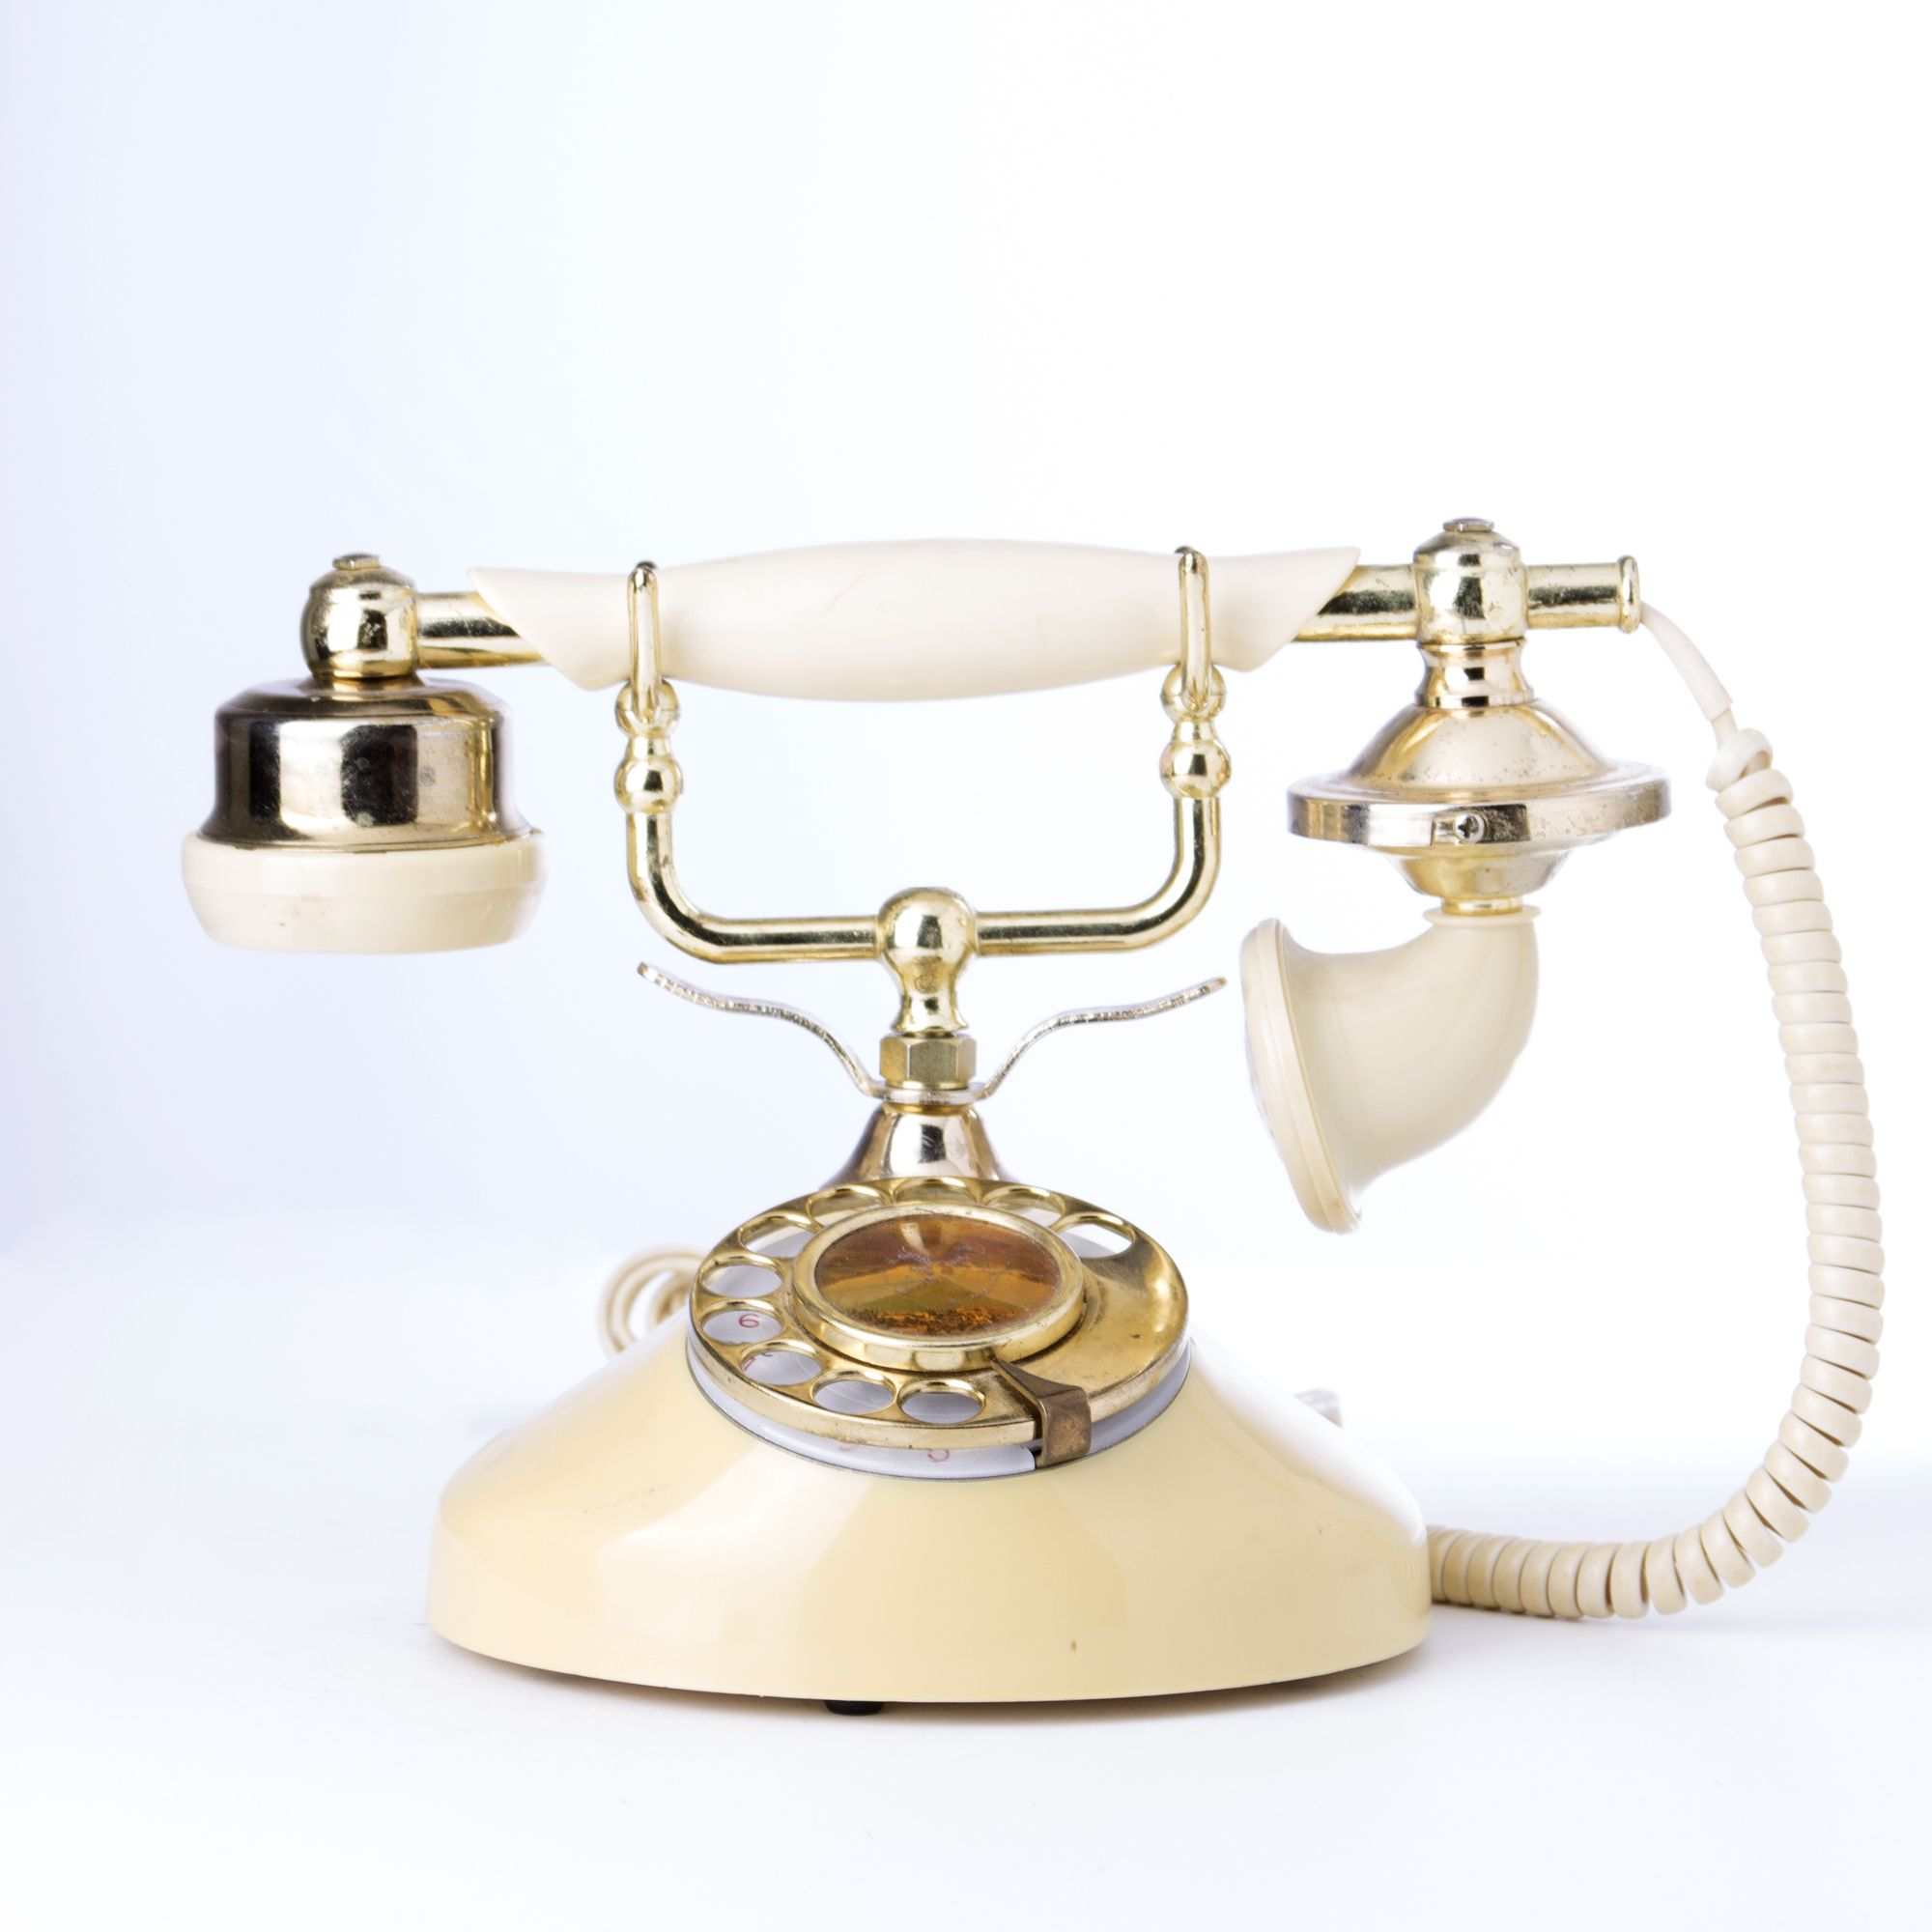 Vintage Ivory & Gold French-Styled Rotary Princess Telephone w/ Cords $40